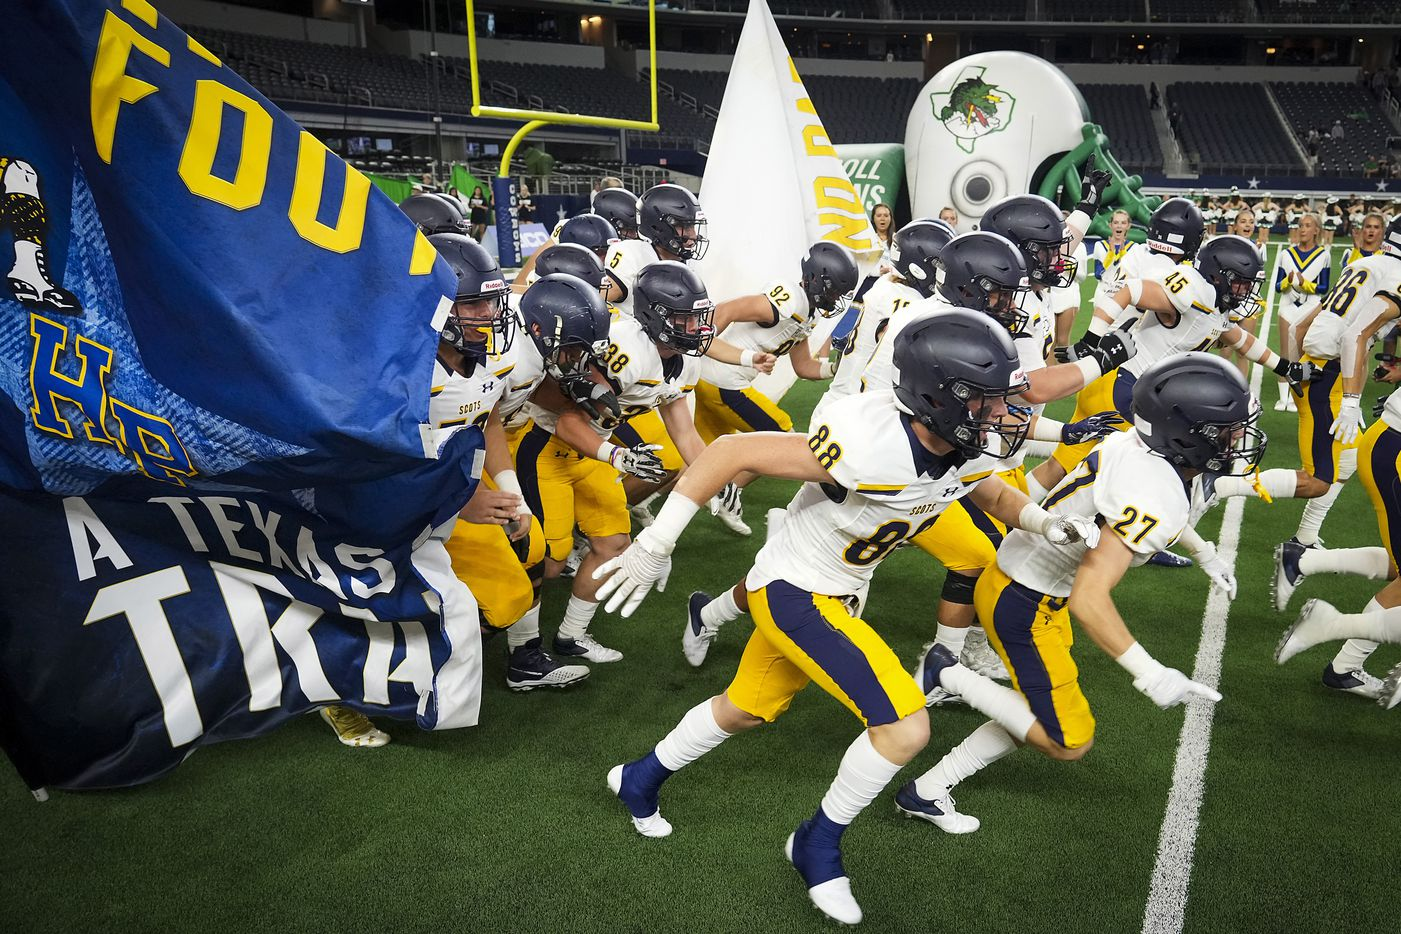 Highland Park players take the field to face Southlake Carroll in a high school football game at AT&T Stadium on Thursday, Aug. 26, 2021, in Arlington.